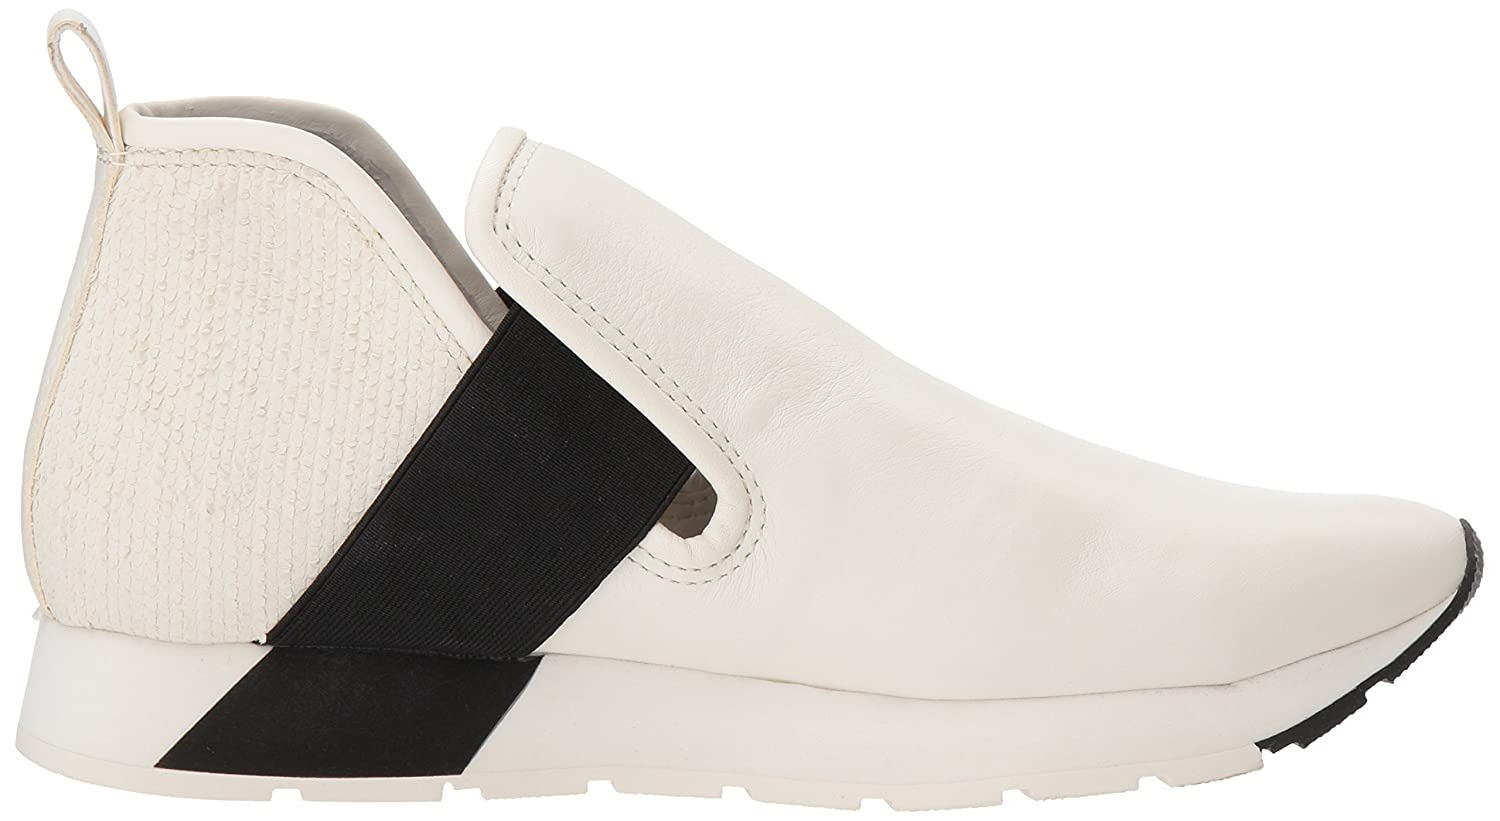 Dolce Vita Women's Ysbel White Sneaker B077GJ2TX5 6 B(M) US|Off White Ysbel Leather f9aa19